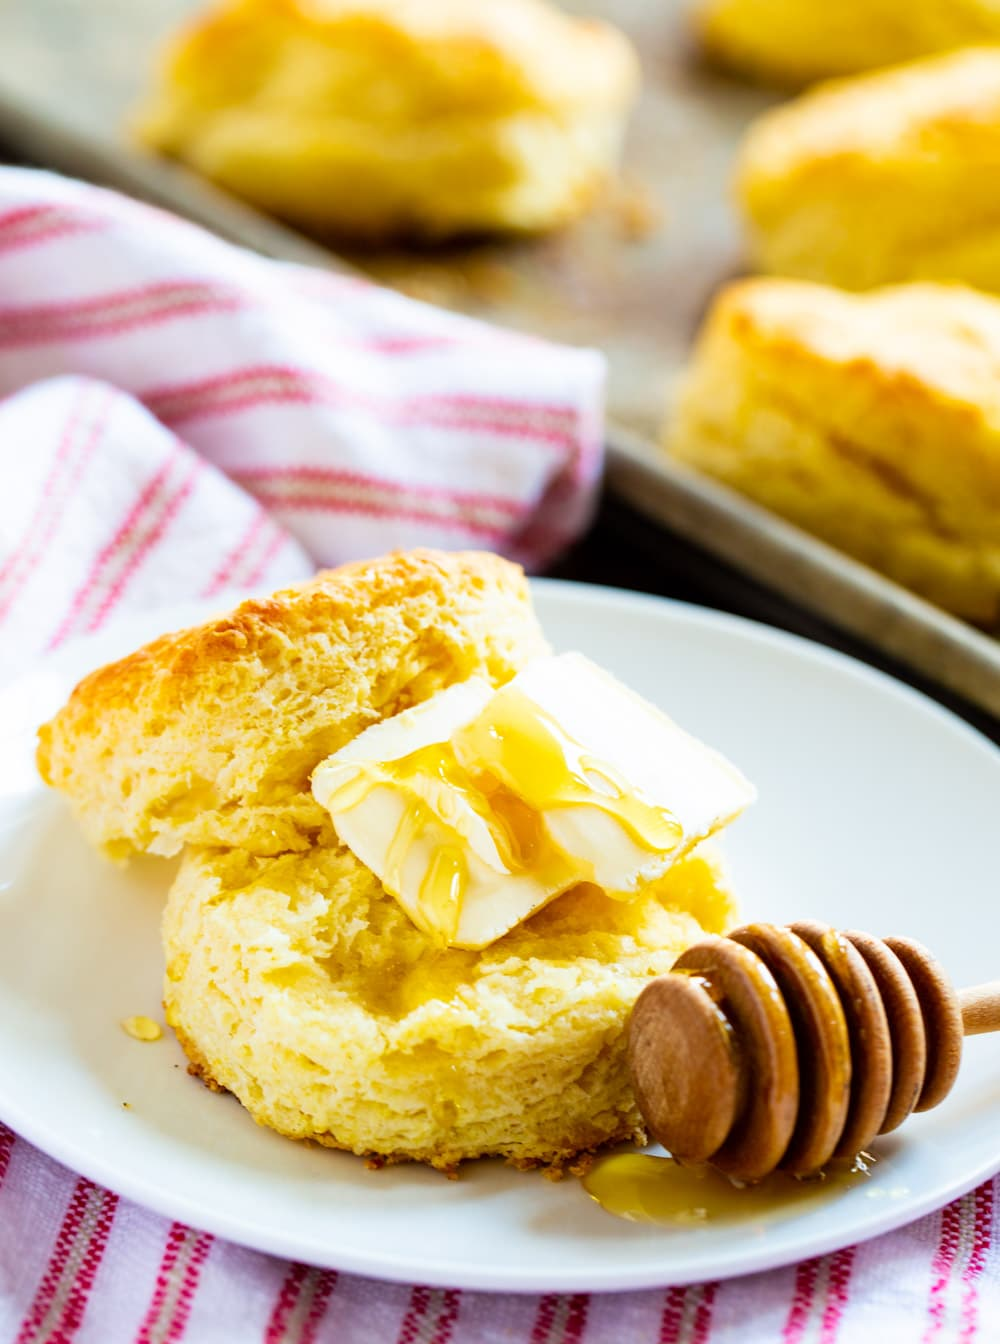 Biscuit split open and covered with butter and honey.